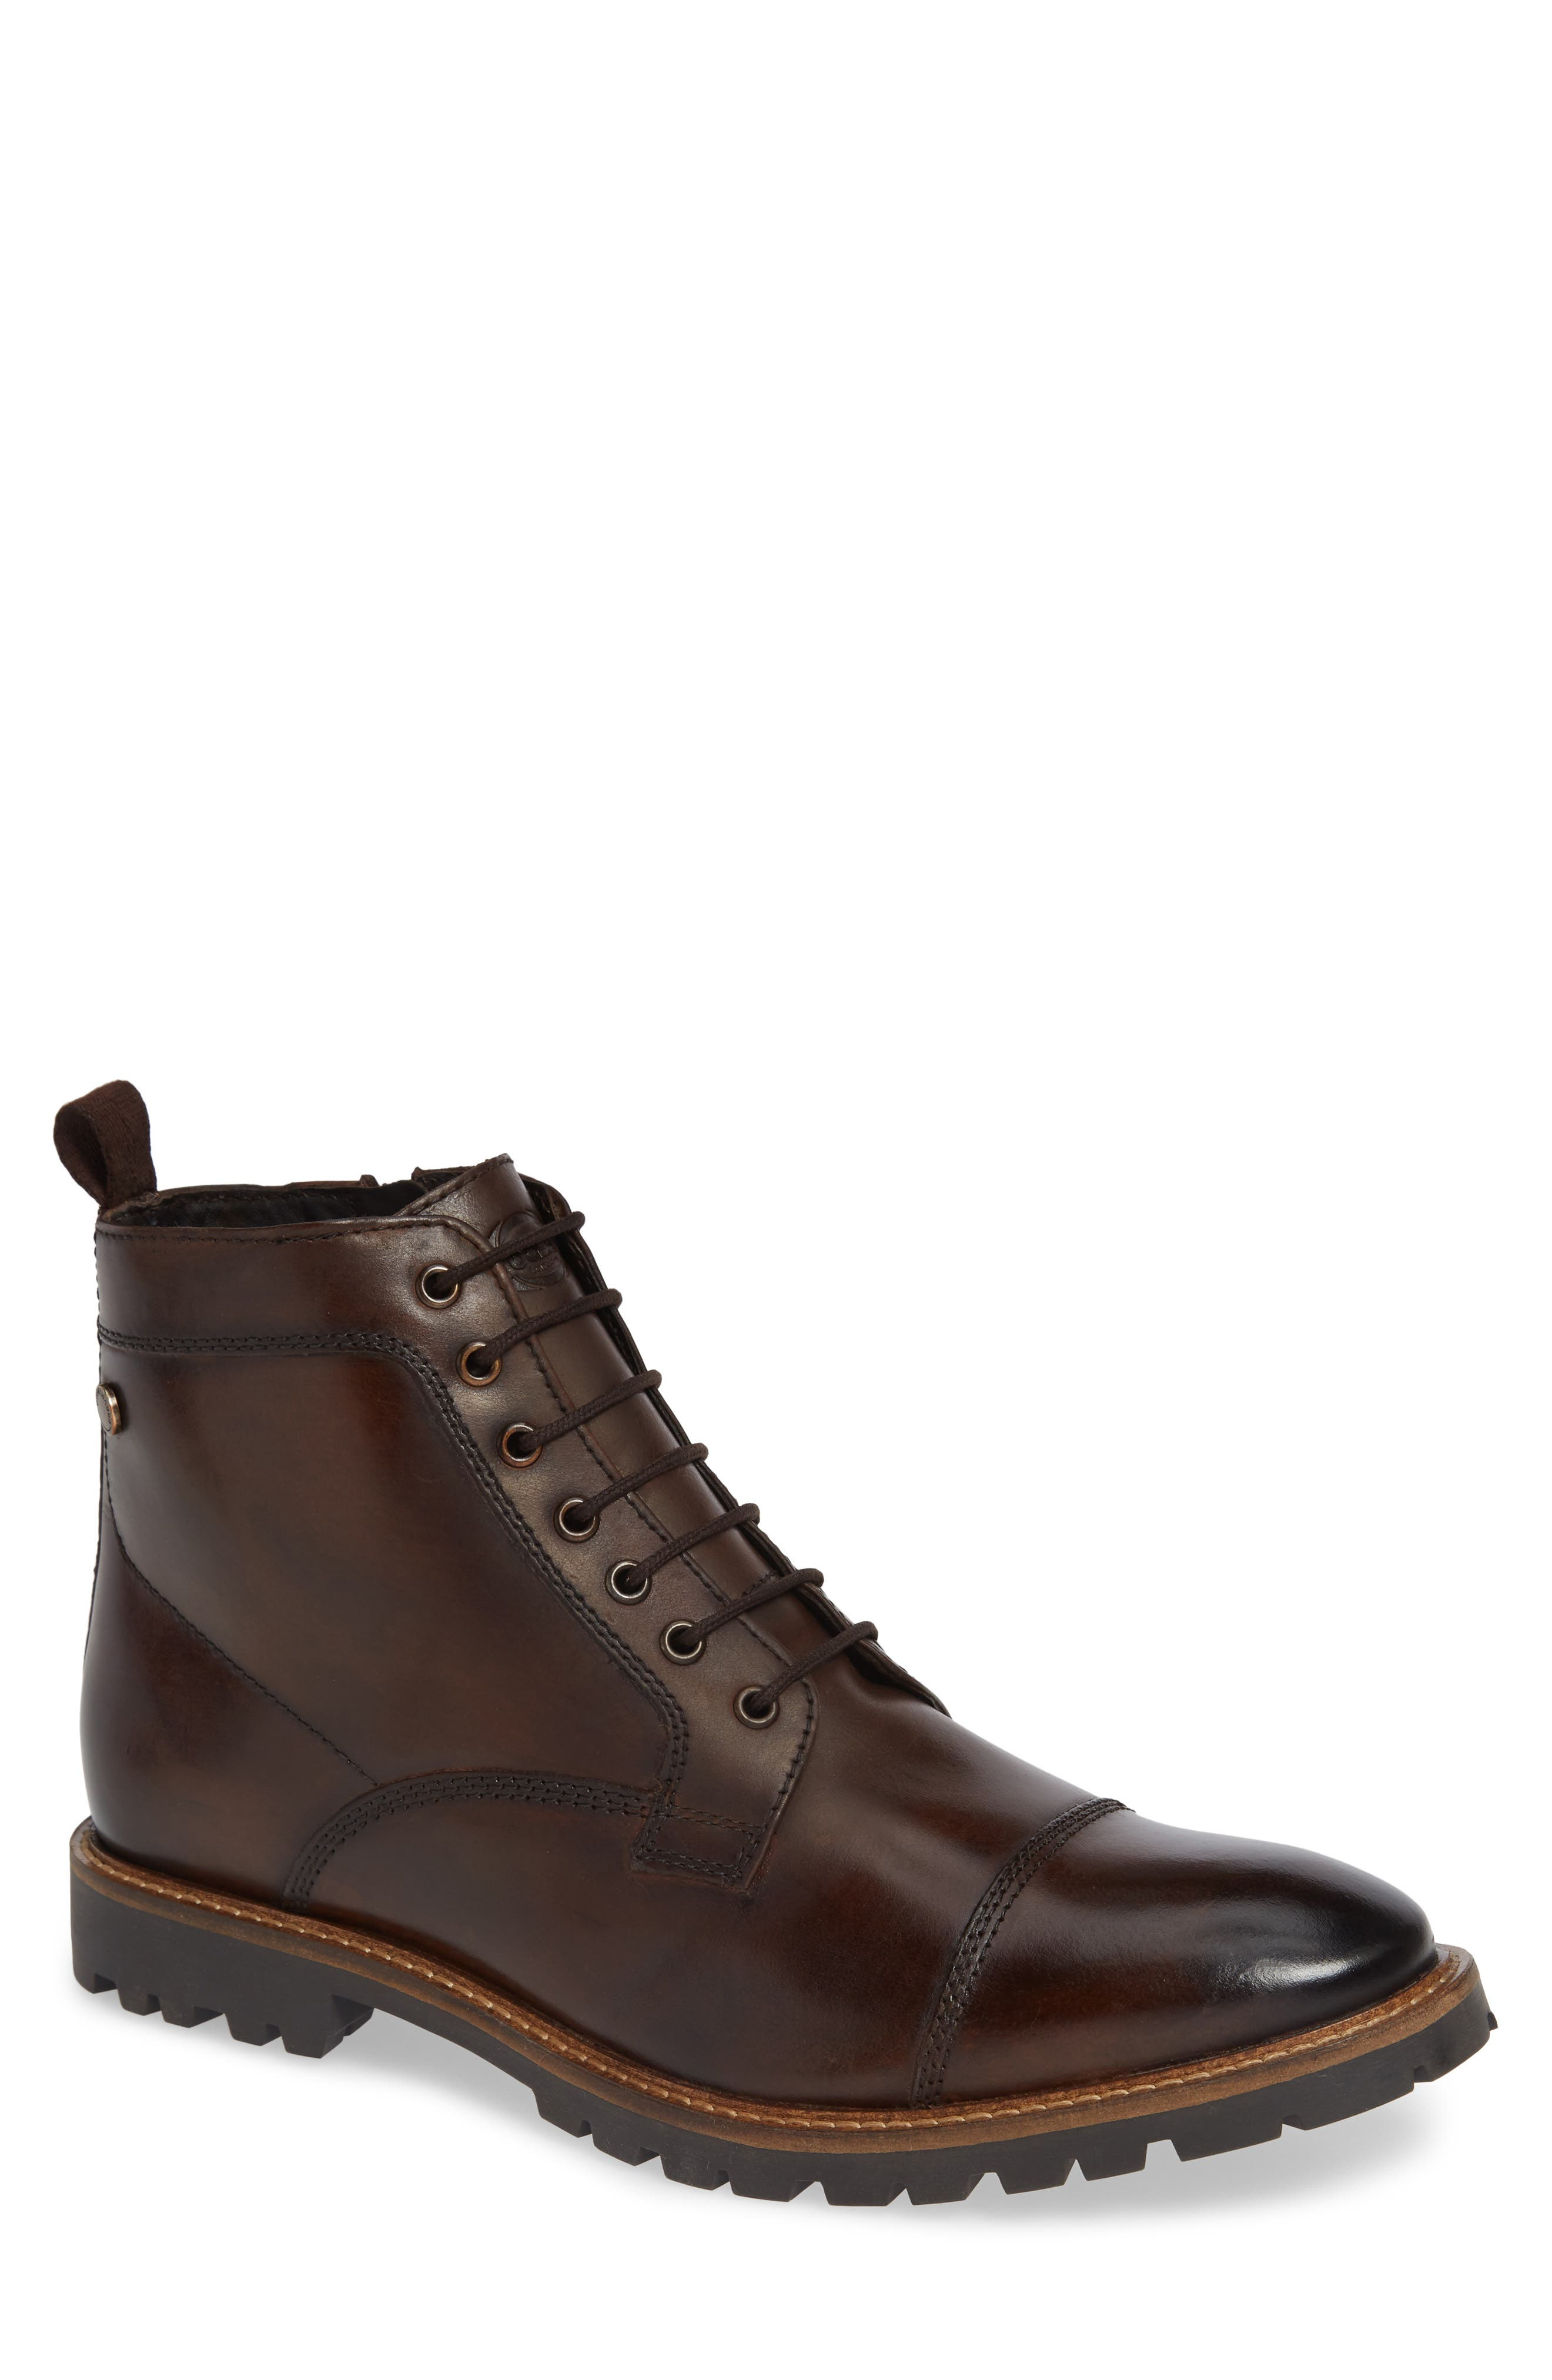 Lugged Cap Toe Boot,                         Main,                         color, BROWN